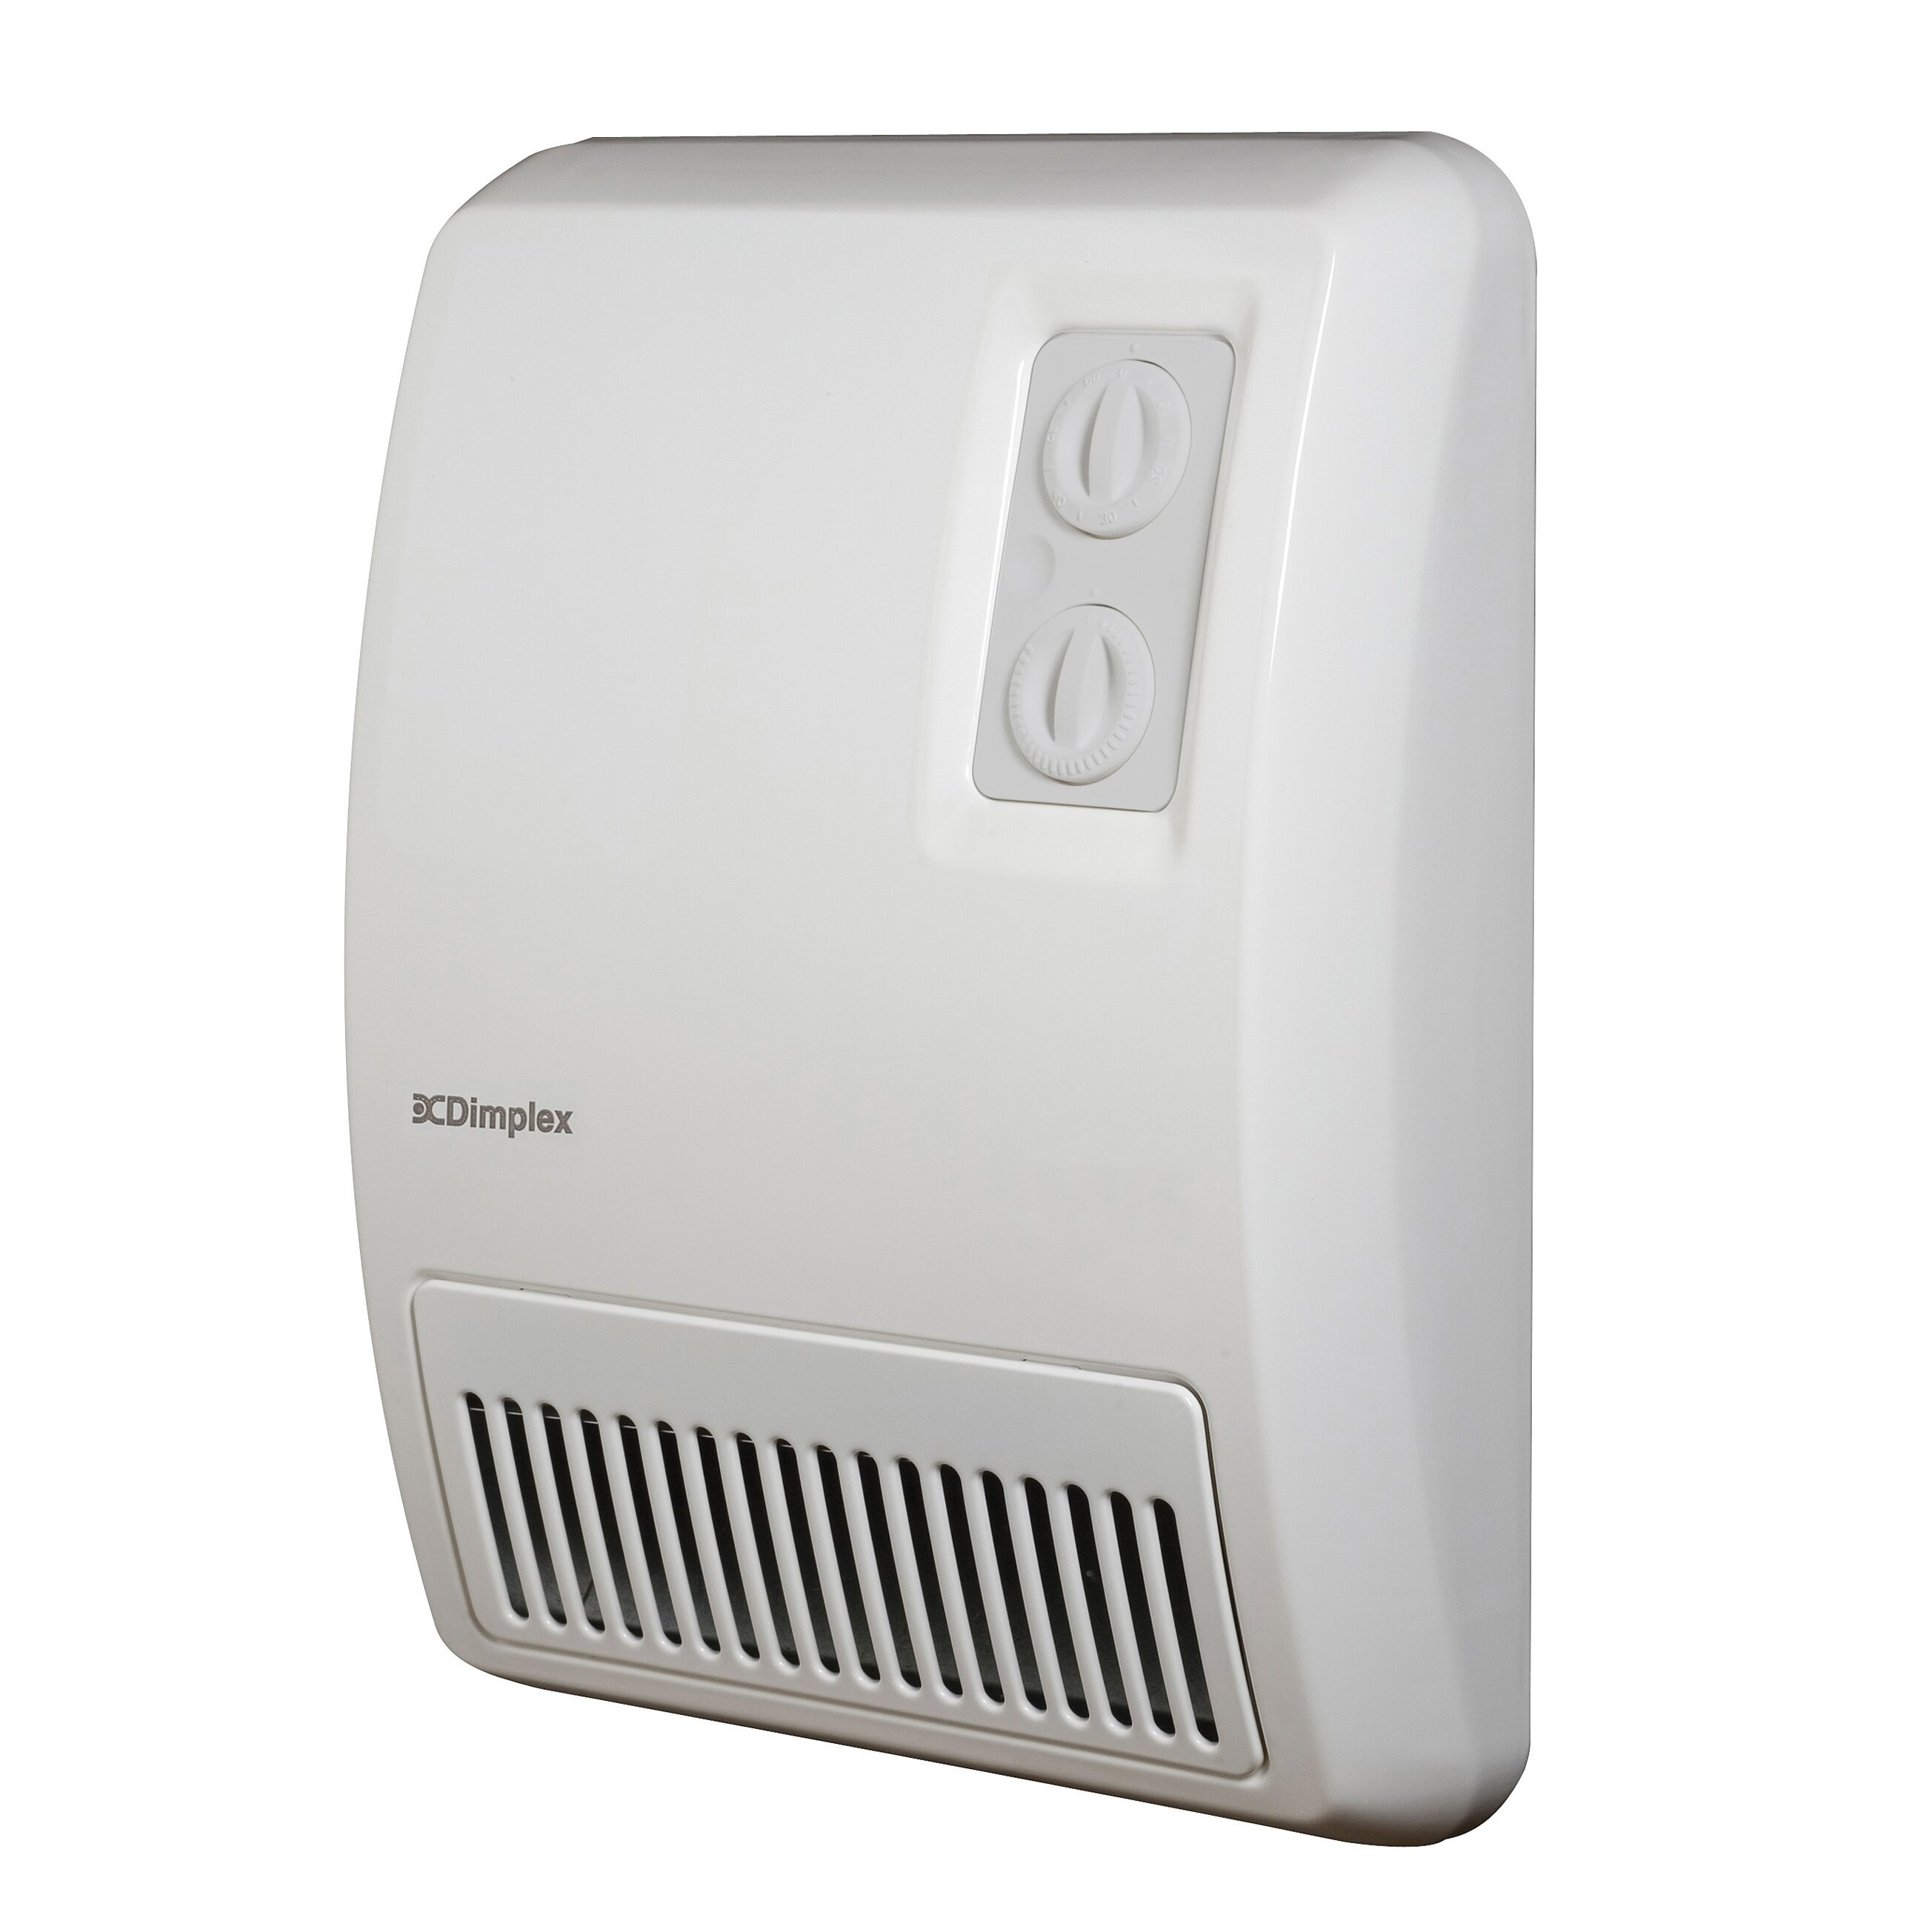 Dimplex 3 413 btu wall insert electric fan heater - Electric wall mounted heaters for bathrooms ...